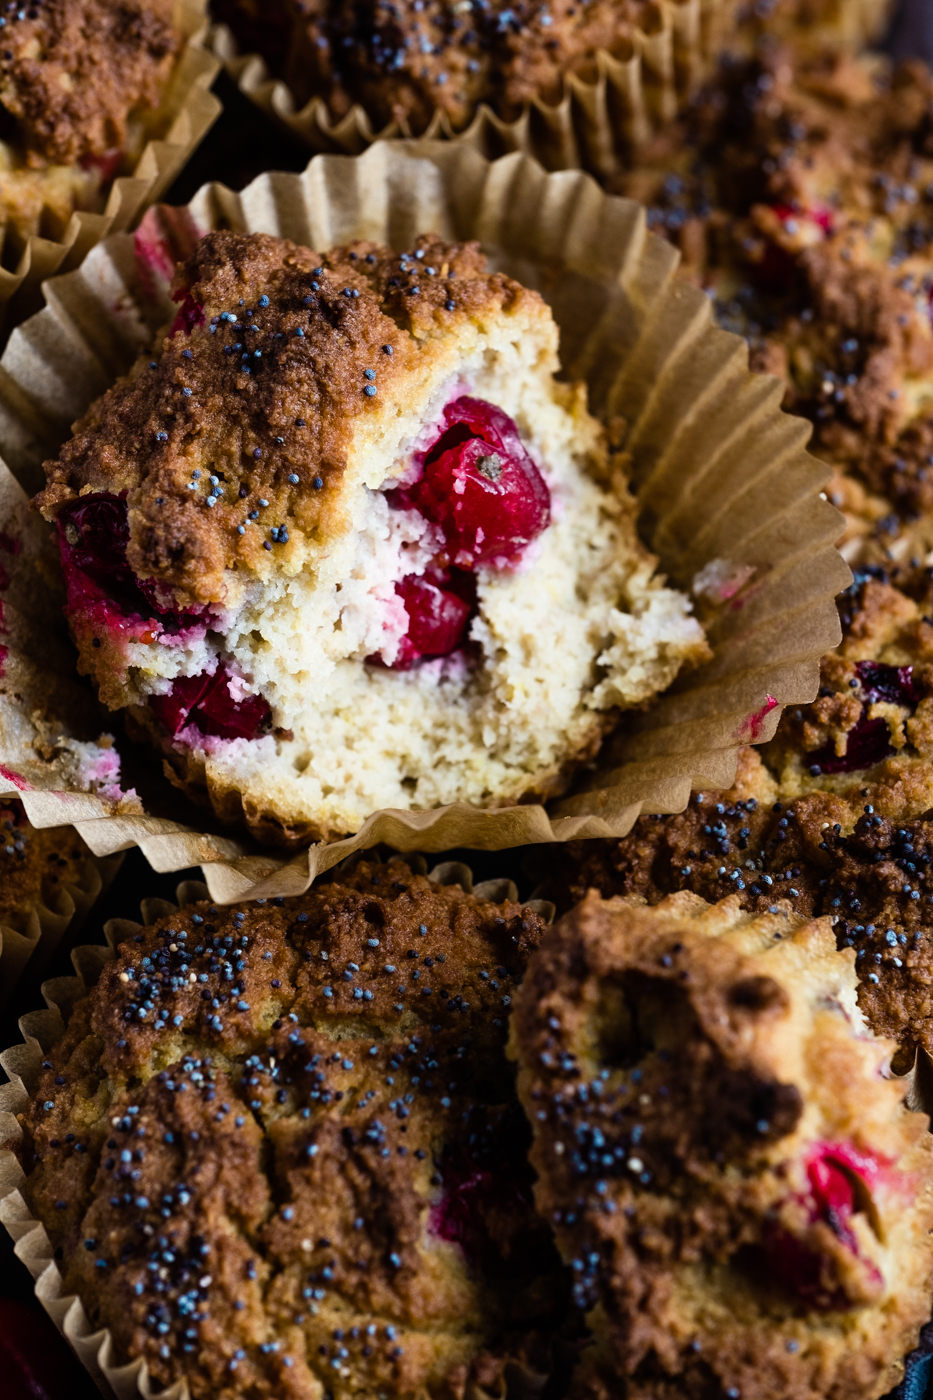 The Lectin-Free Orange Cranberry Muffins look yummy